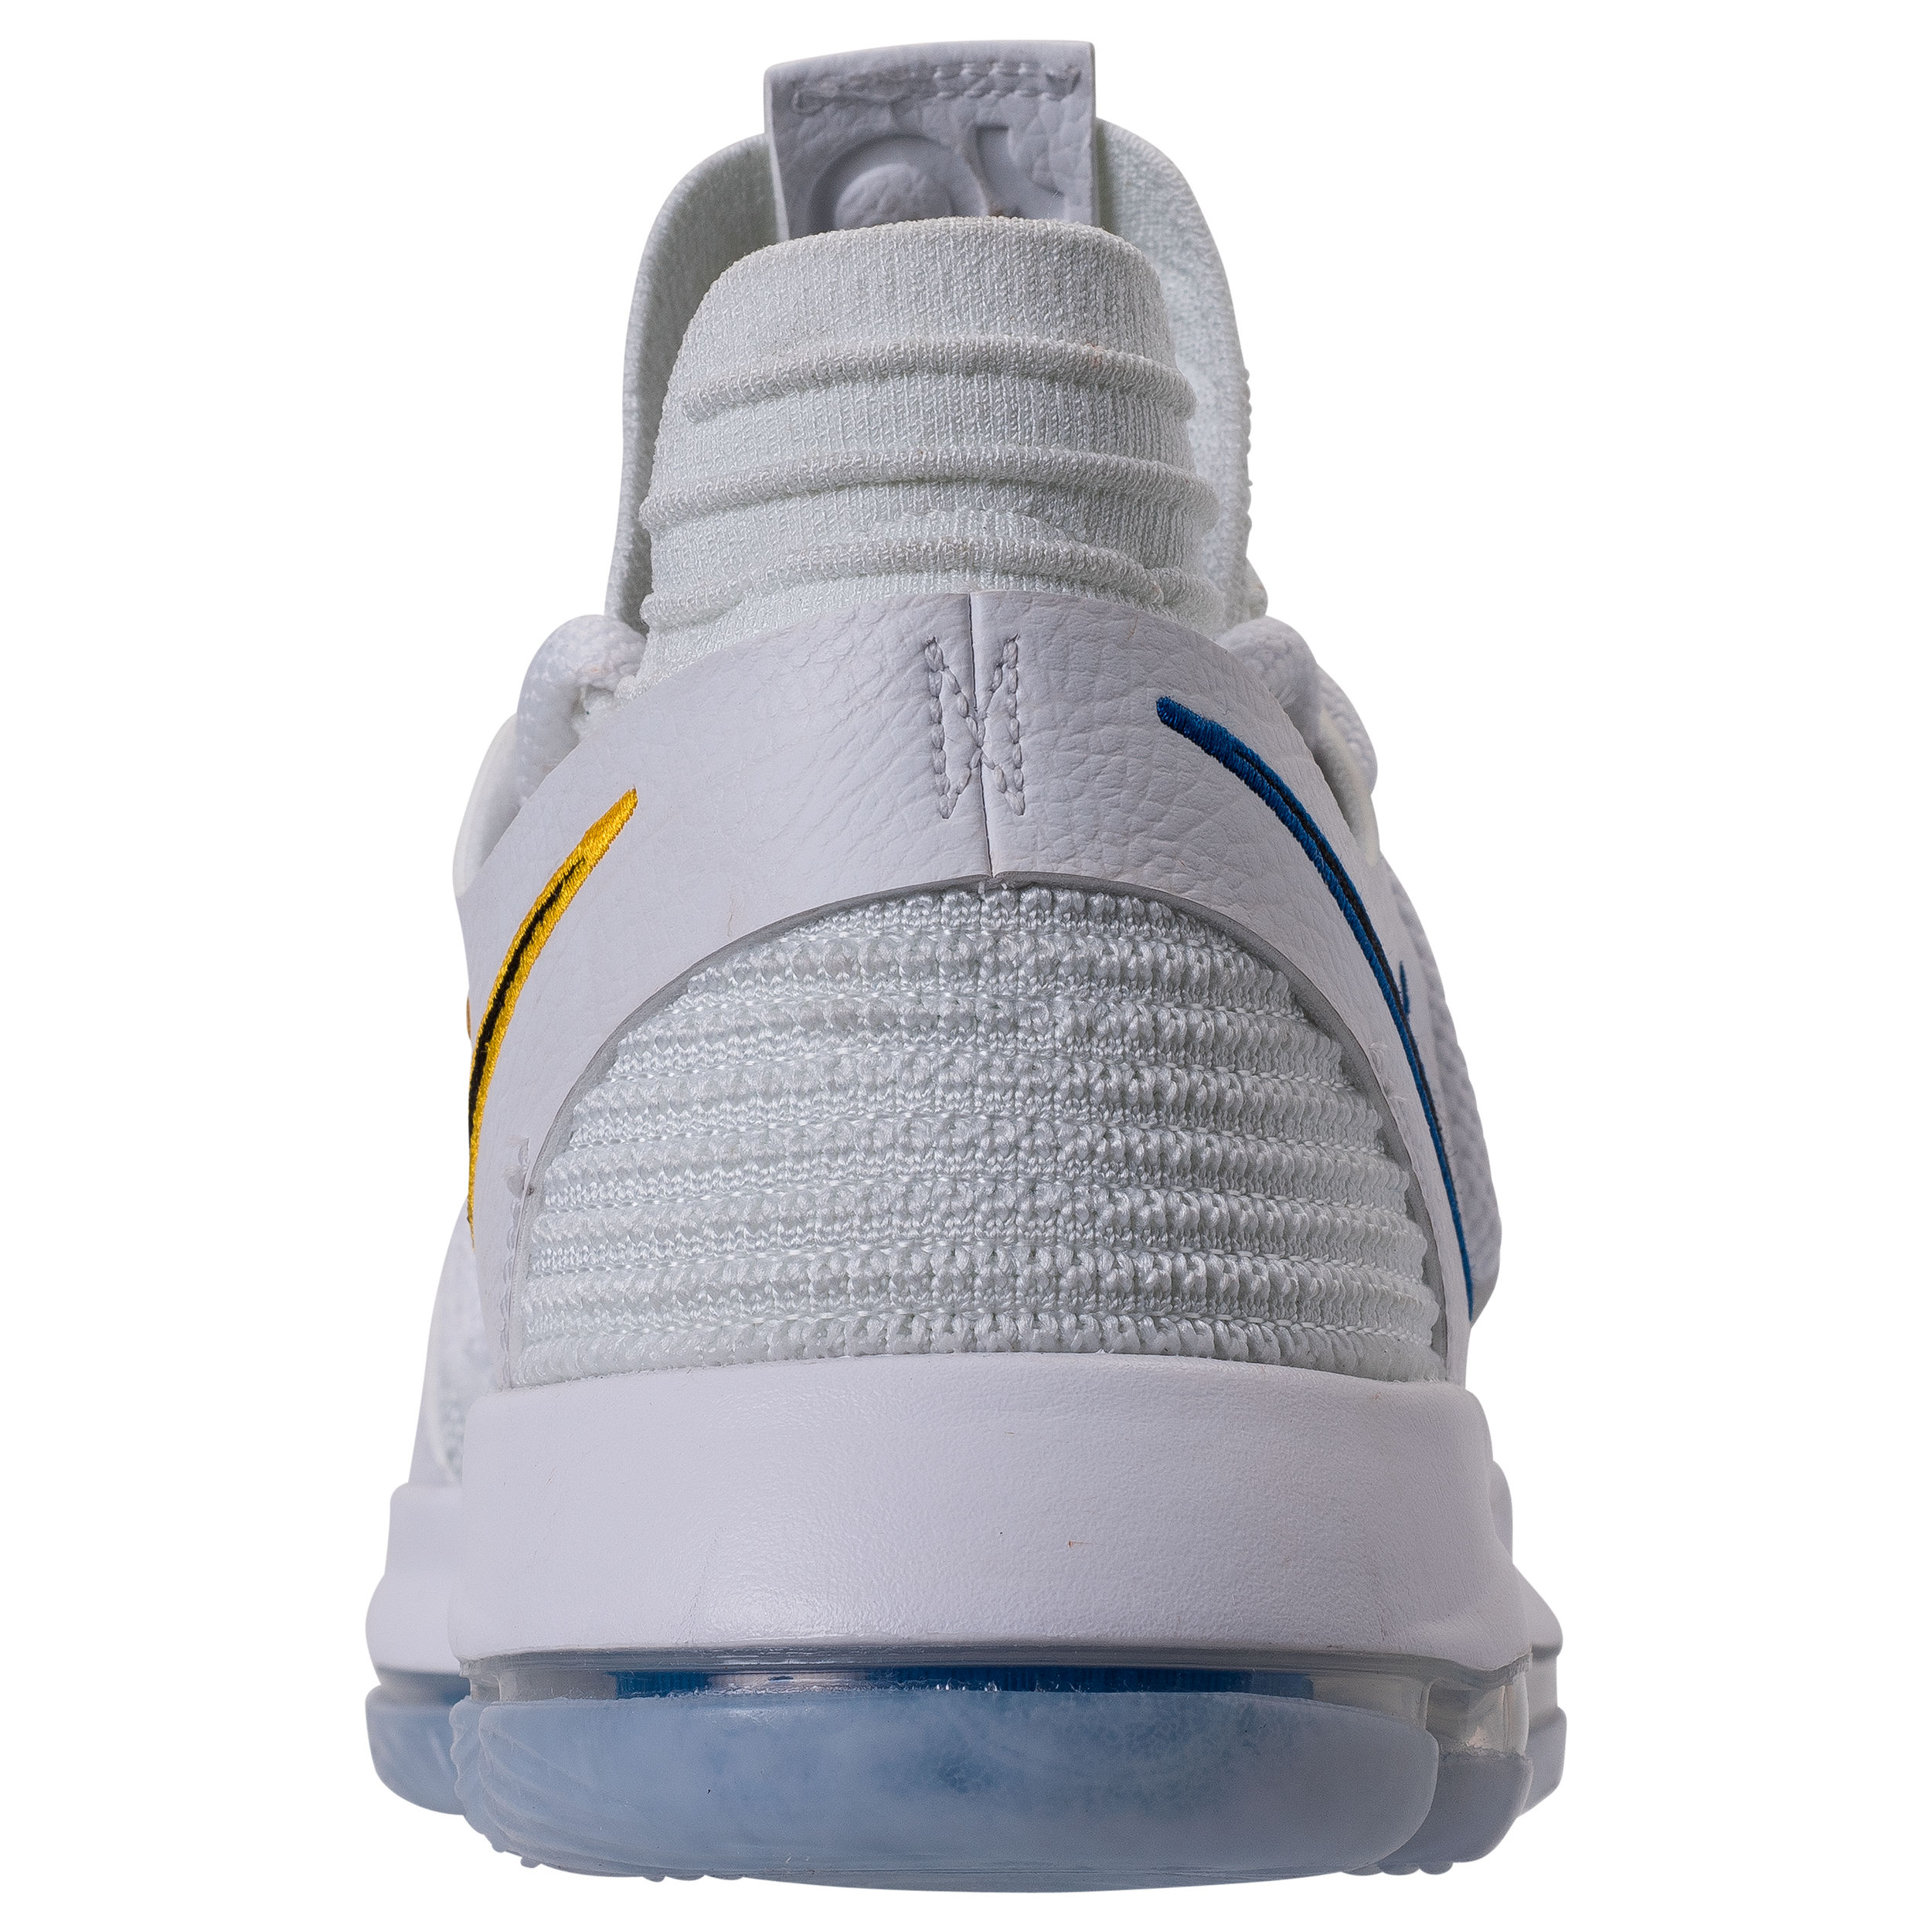 save off 23ca7 2814f Release Reminder: Nike KD10 'Numbers' Celebrates